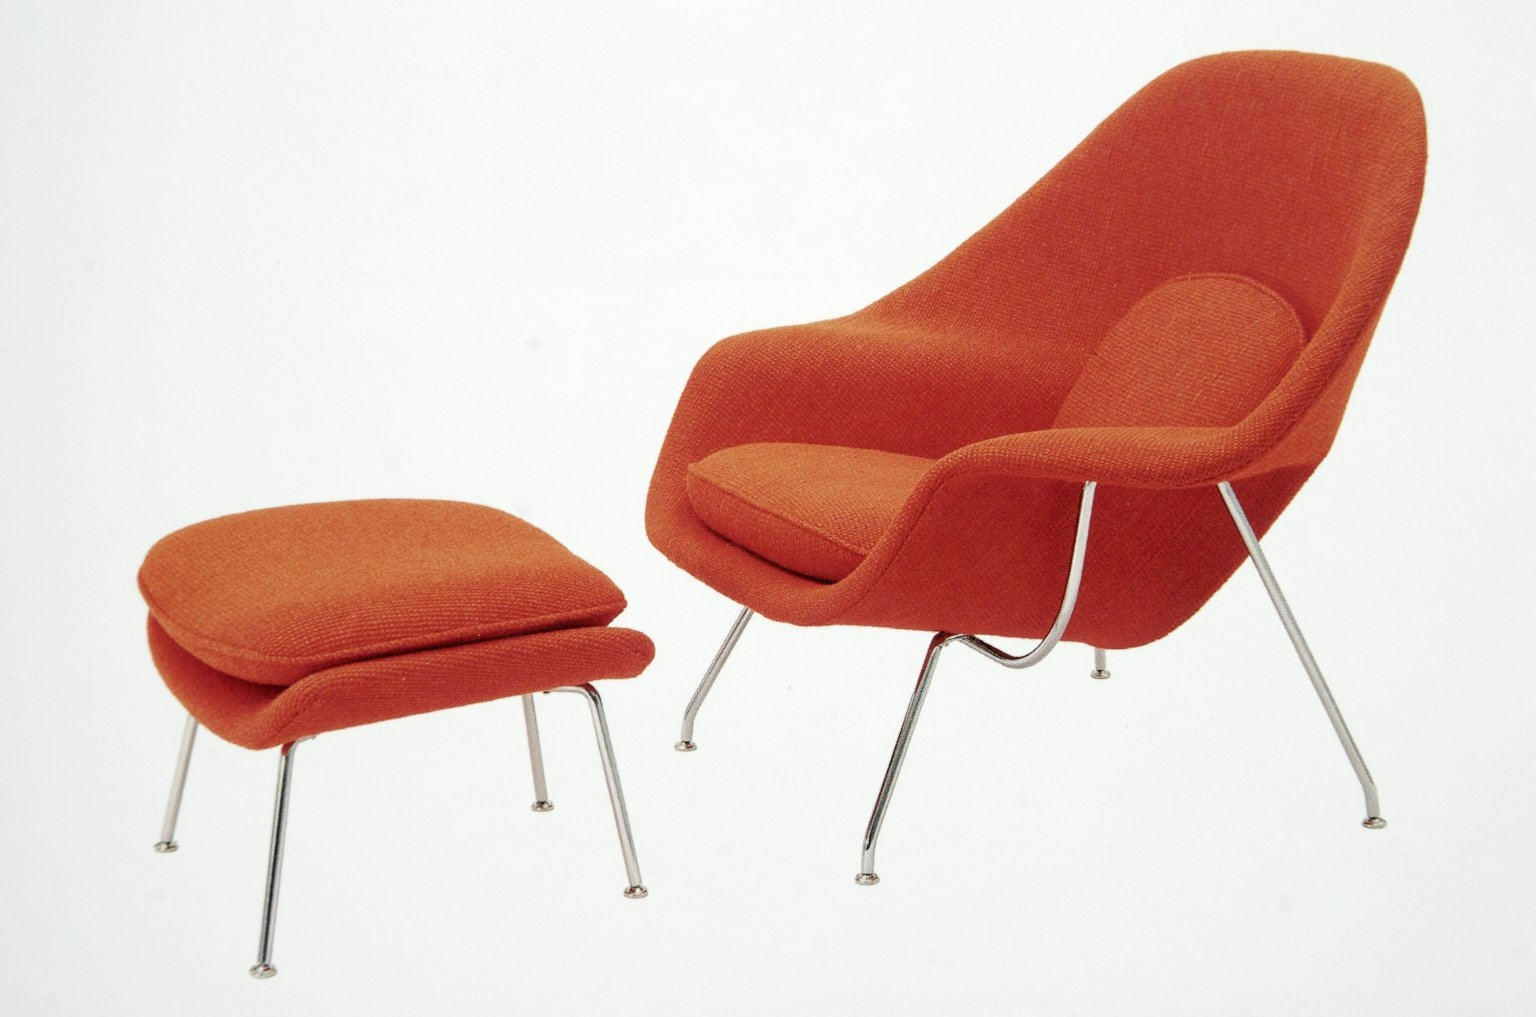 Womb Chair, Eero Saarinen, Design Library Image Collection